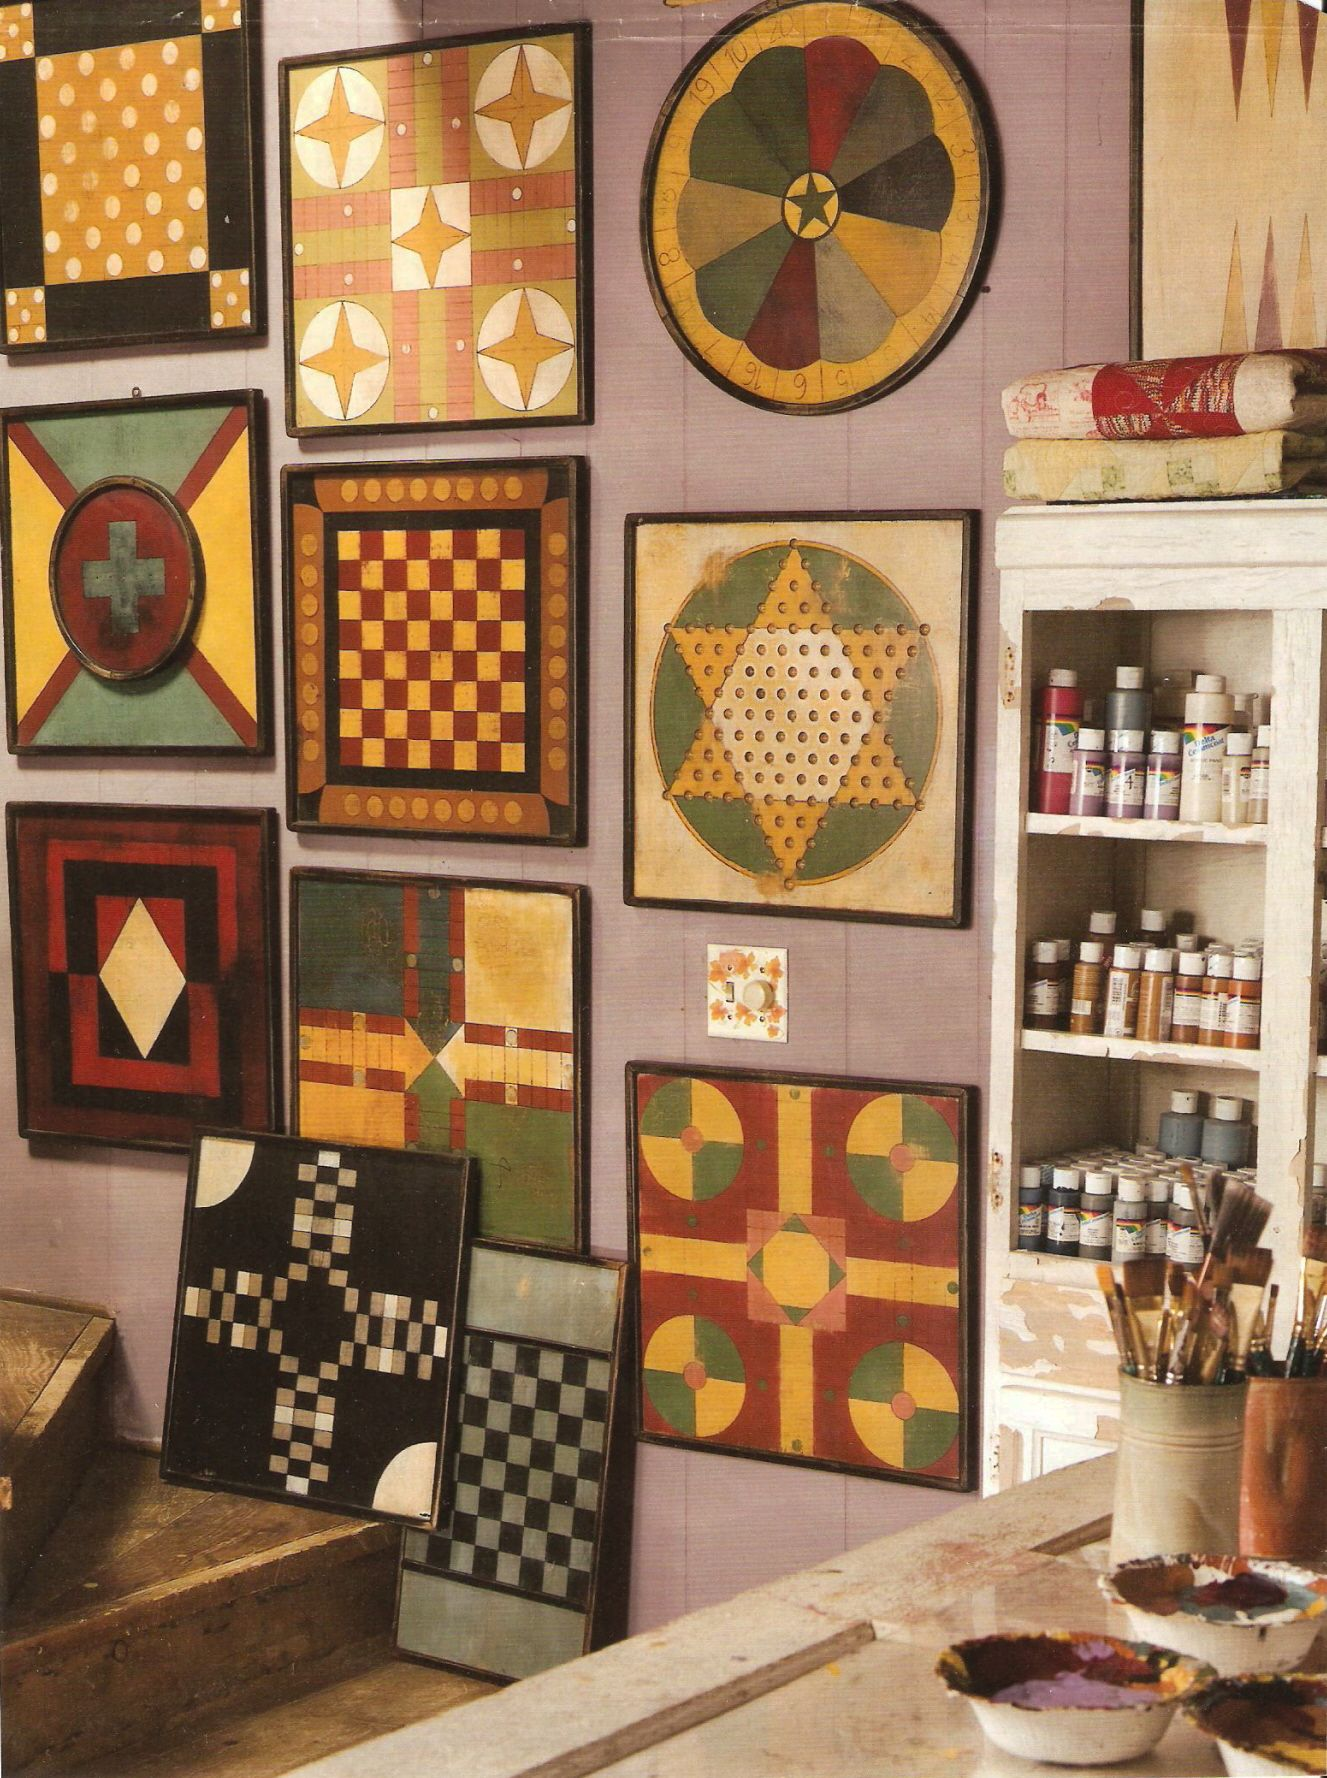 Decorative Game Boards Gameboards Not This Many But I Do Want Some In The